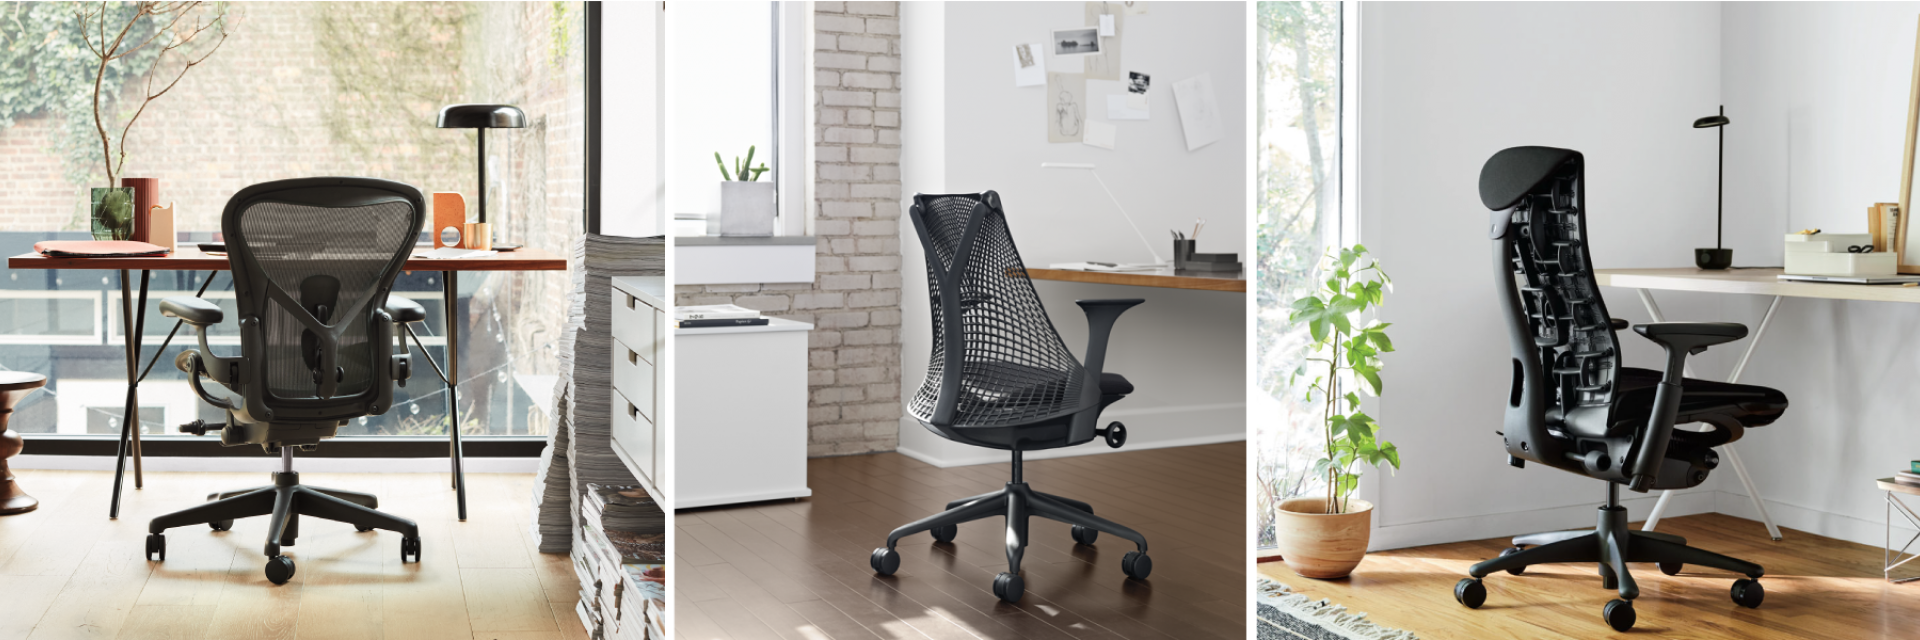 Performance Office Chairs from Herman Miller